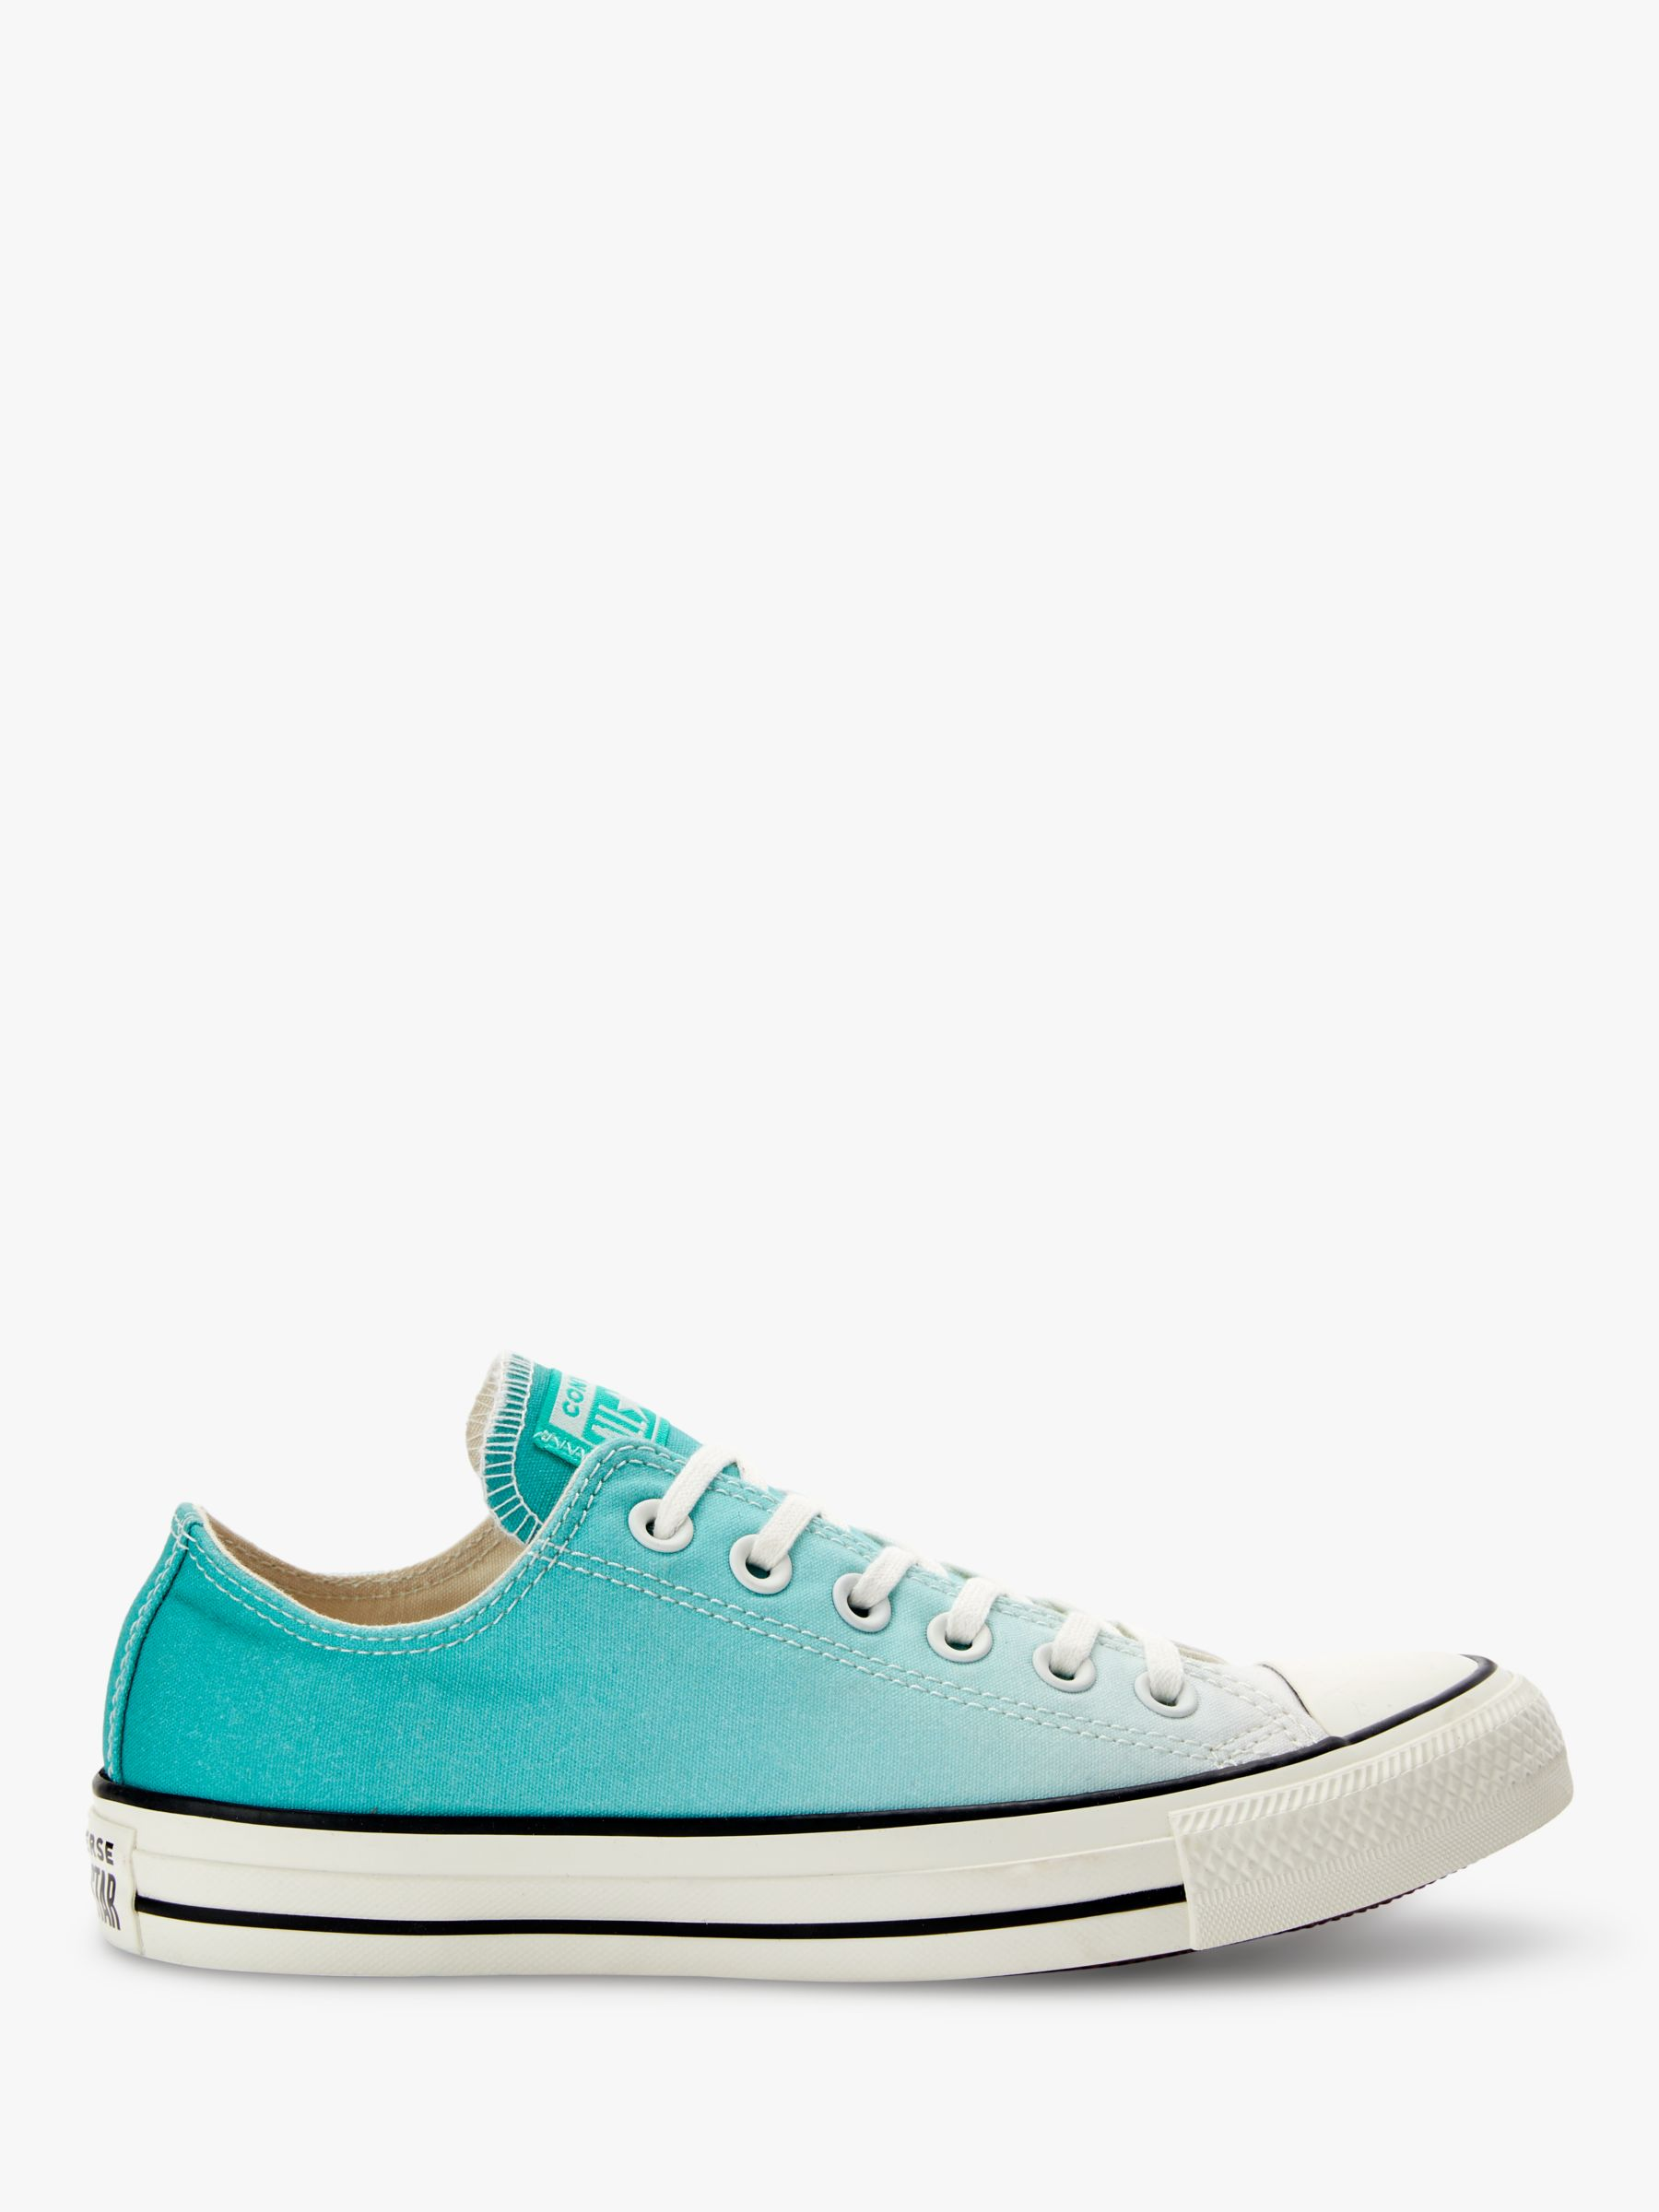 1d3134f5bad0 Converse Chuck Taylor All Star Ox Ombre Effect Trainers at John Lewis    Partners